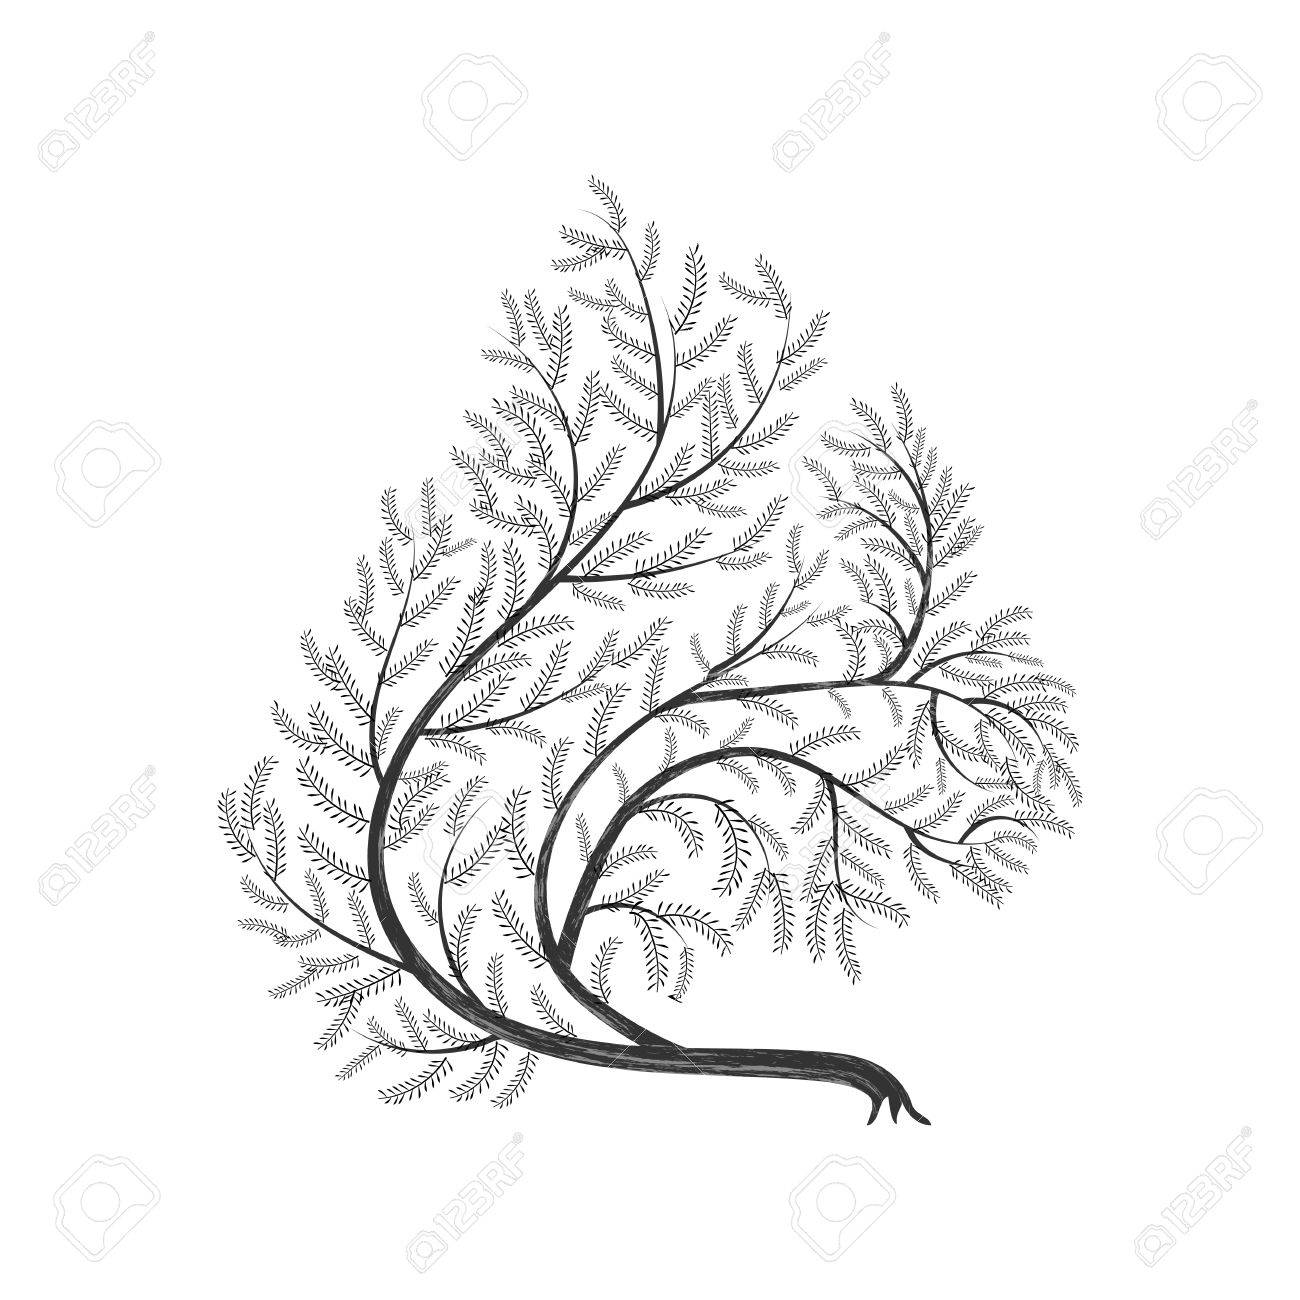 1300x1300 Stylized Branches Squirrel For Use As Logos On Cards, In Printing